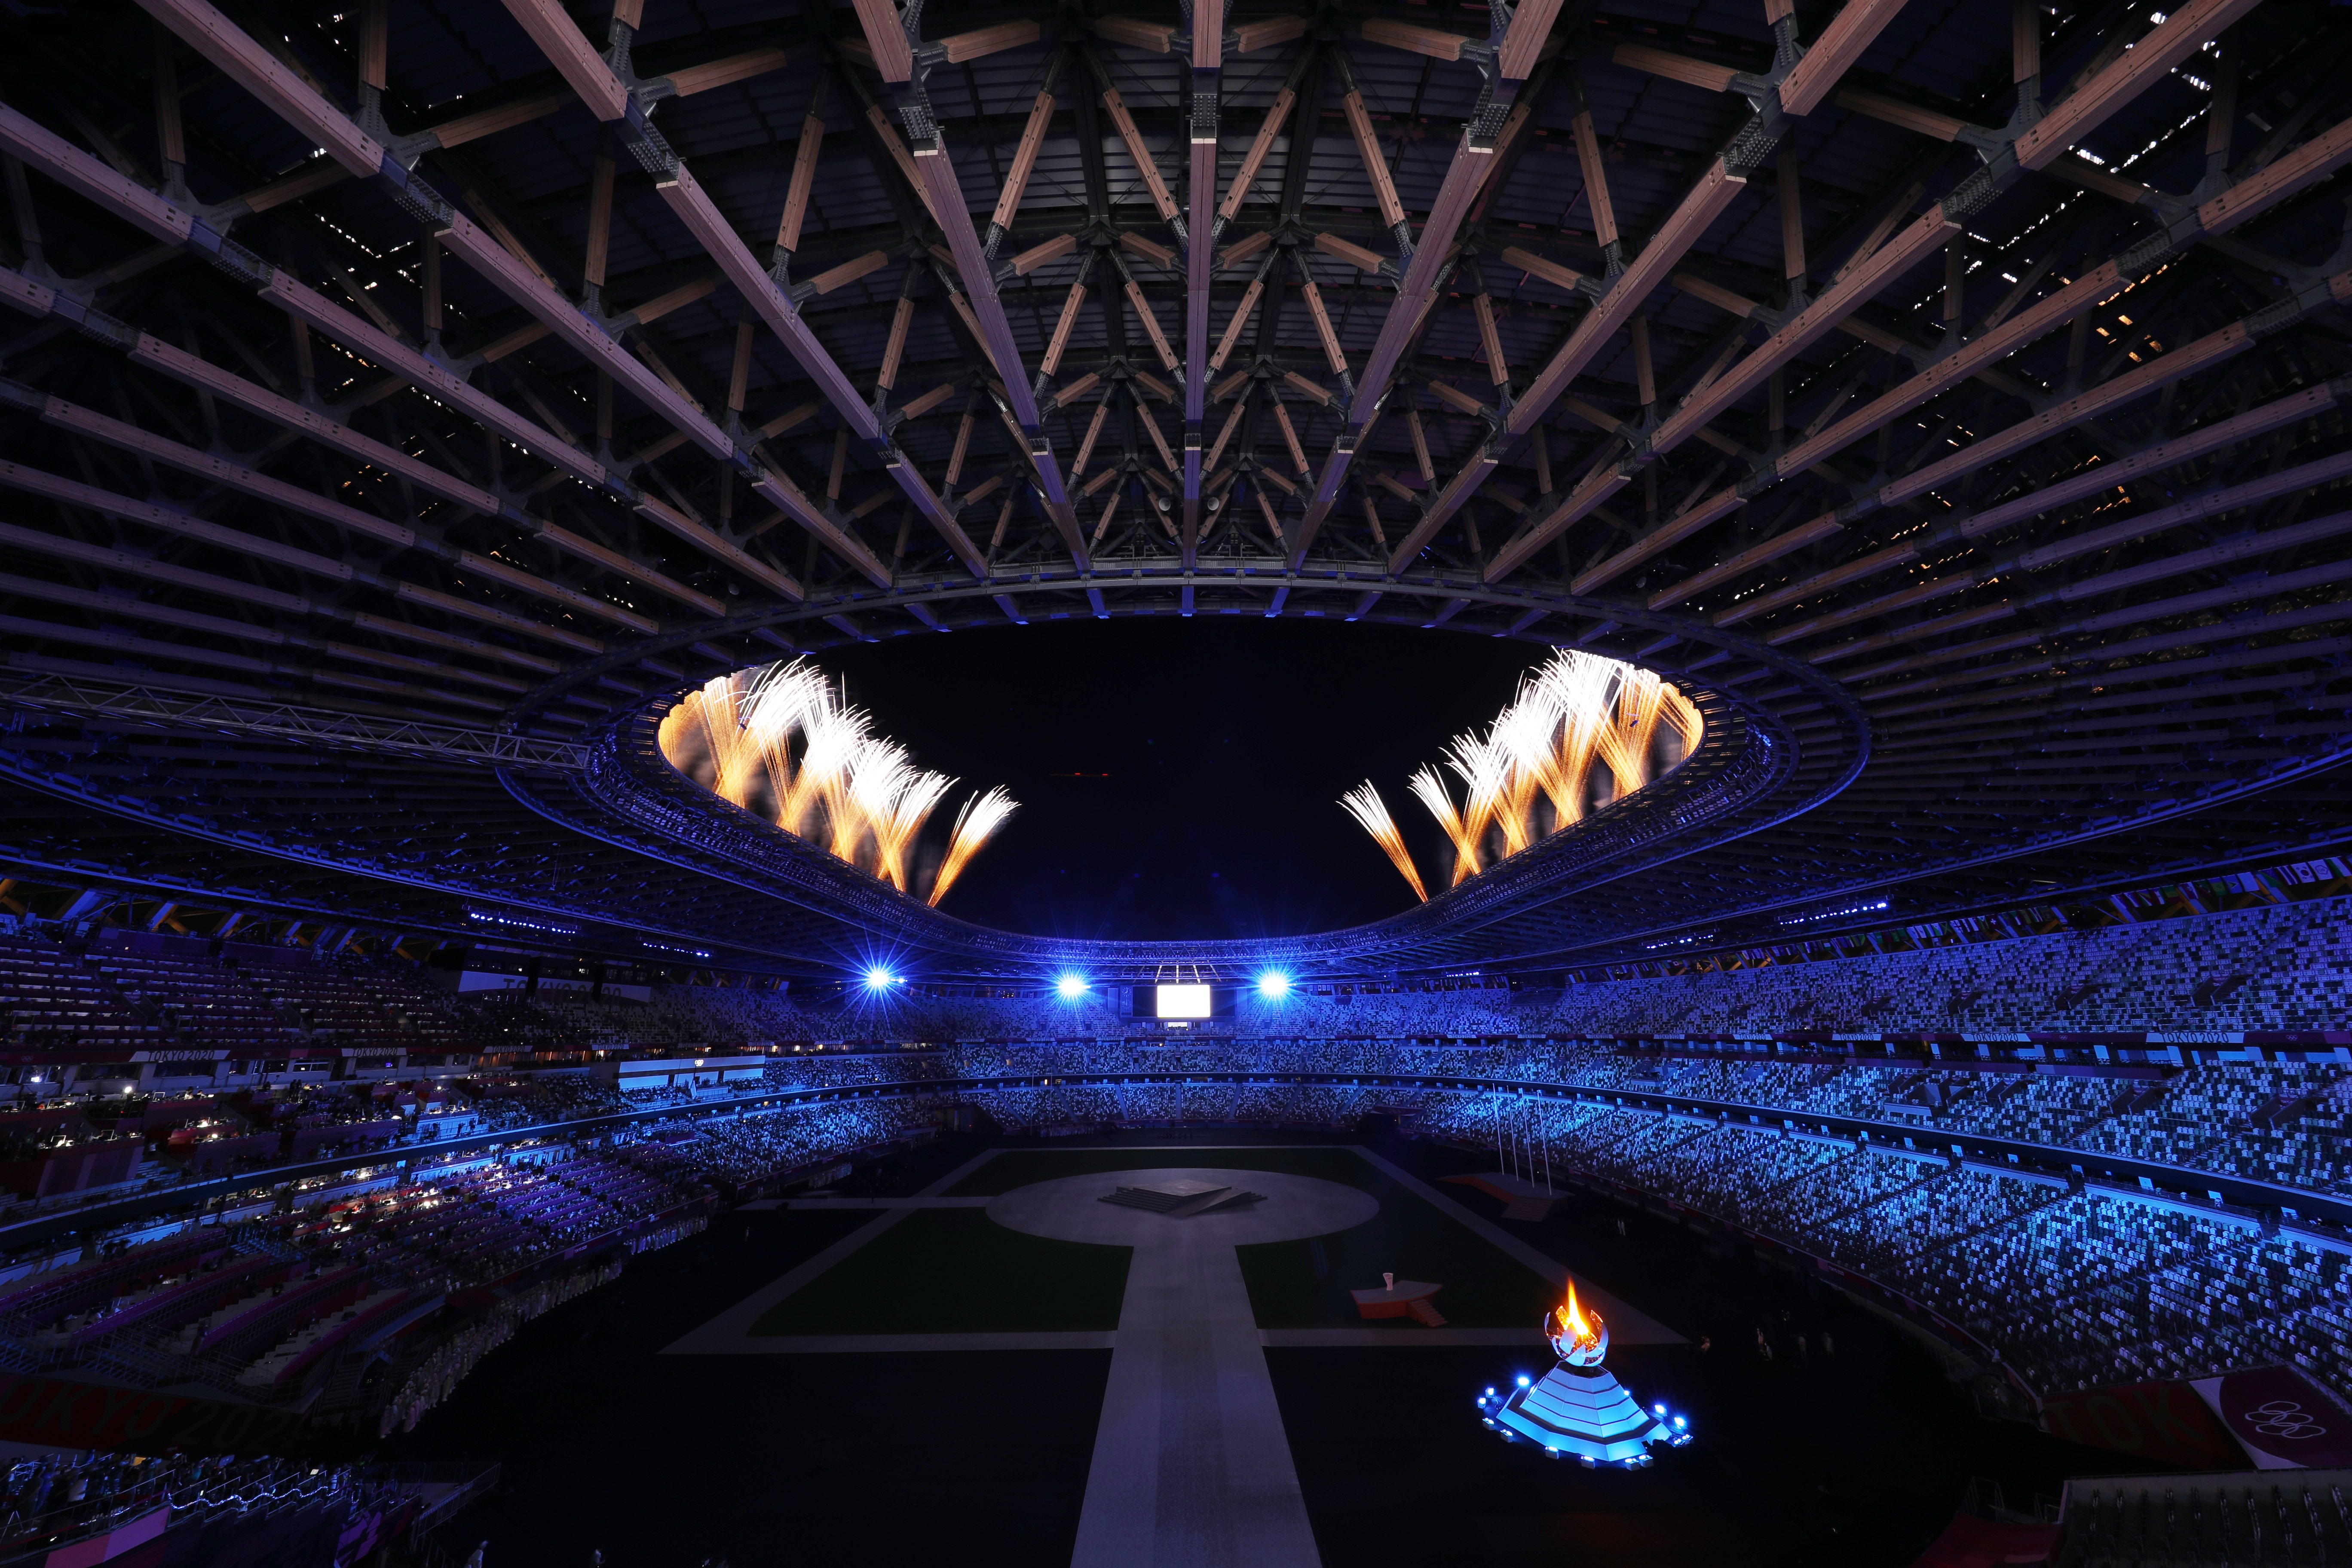 Tokyo to pass Olympic baton to Paris after imperfect, irrepressible games